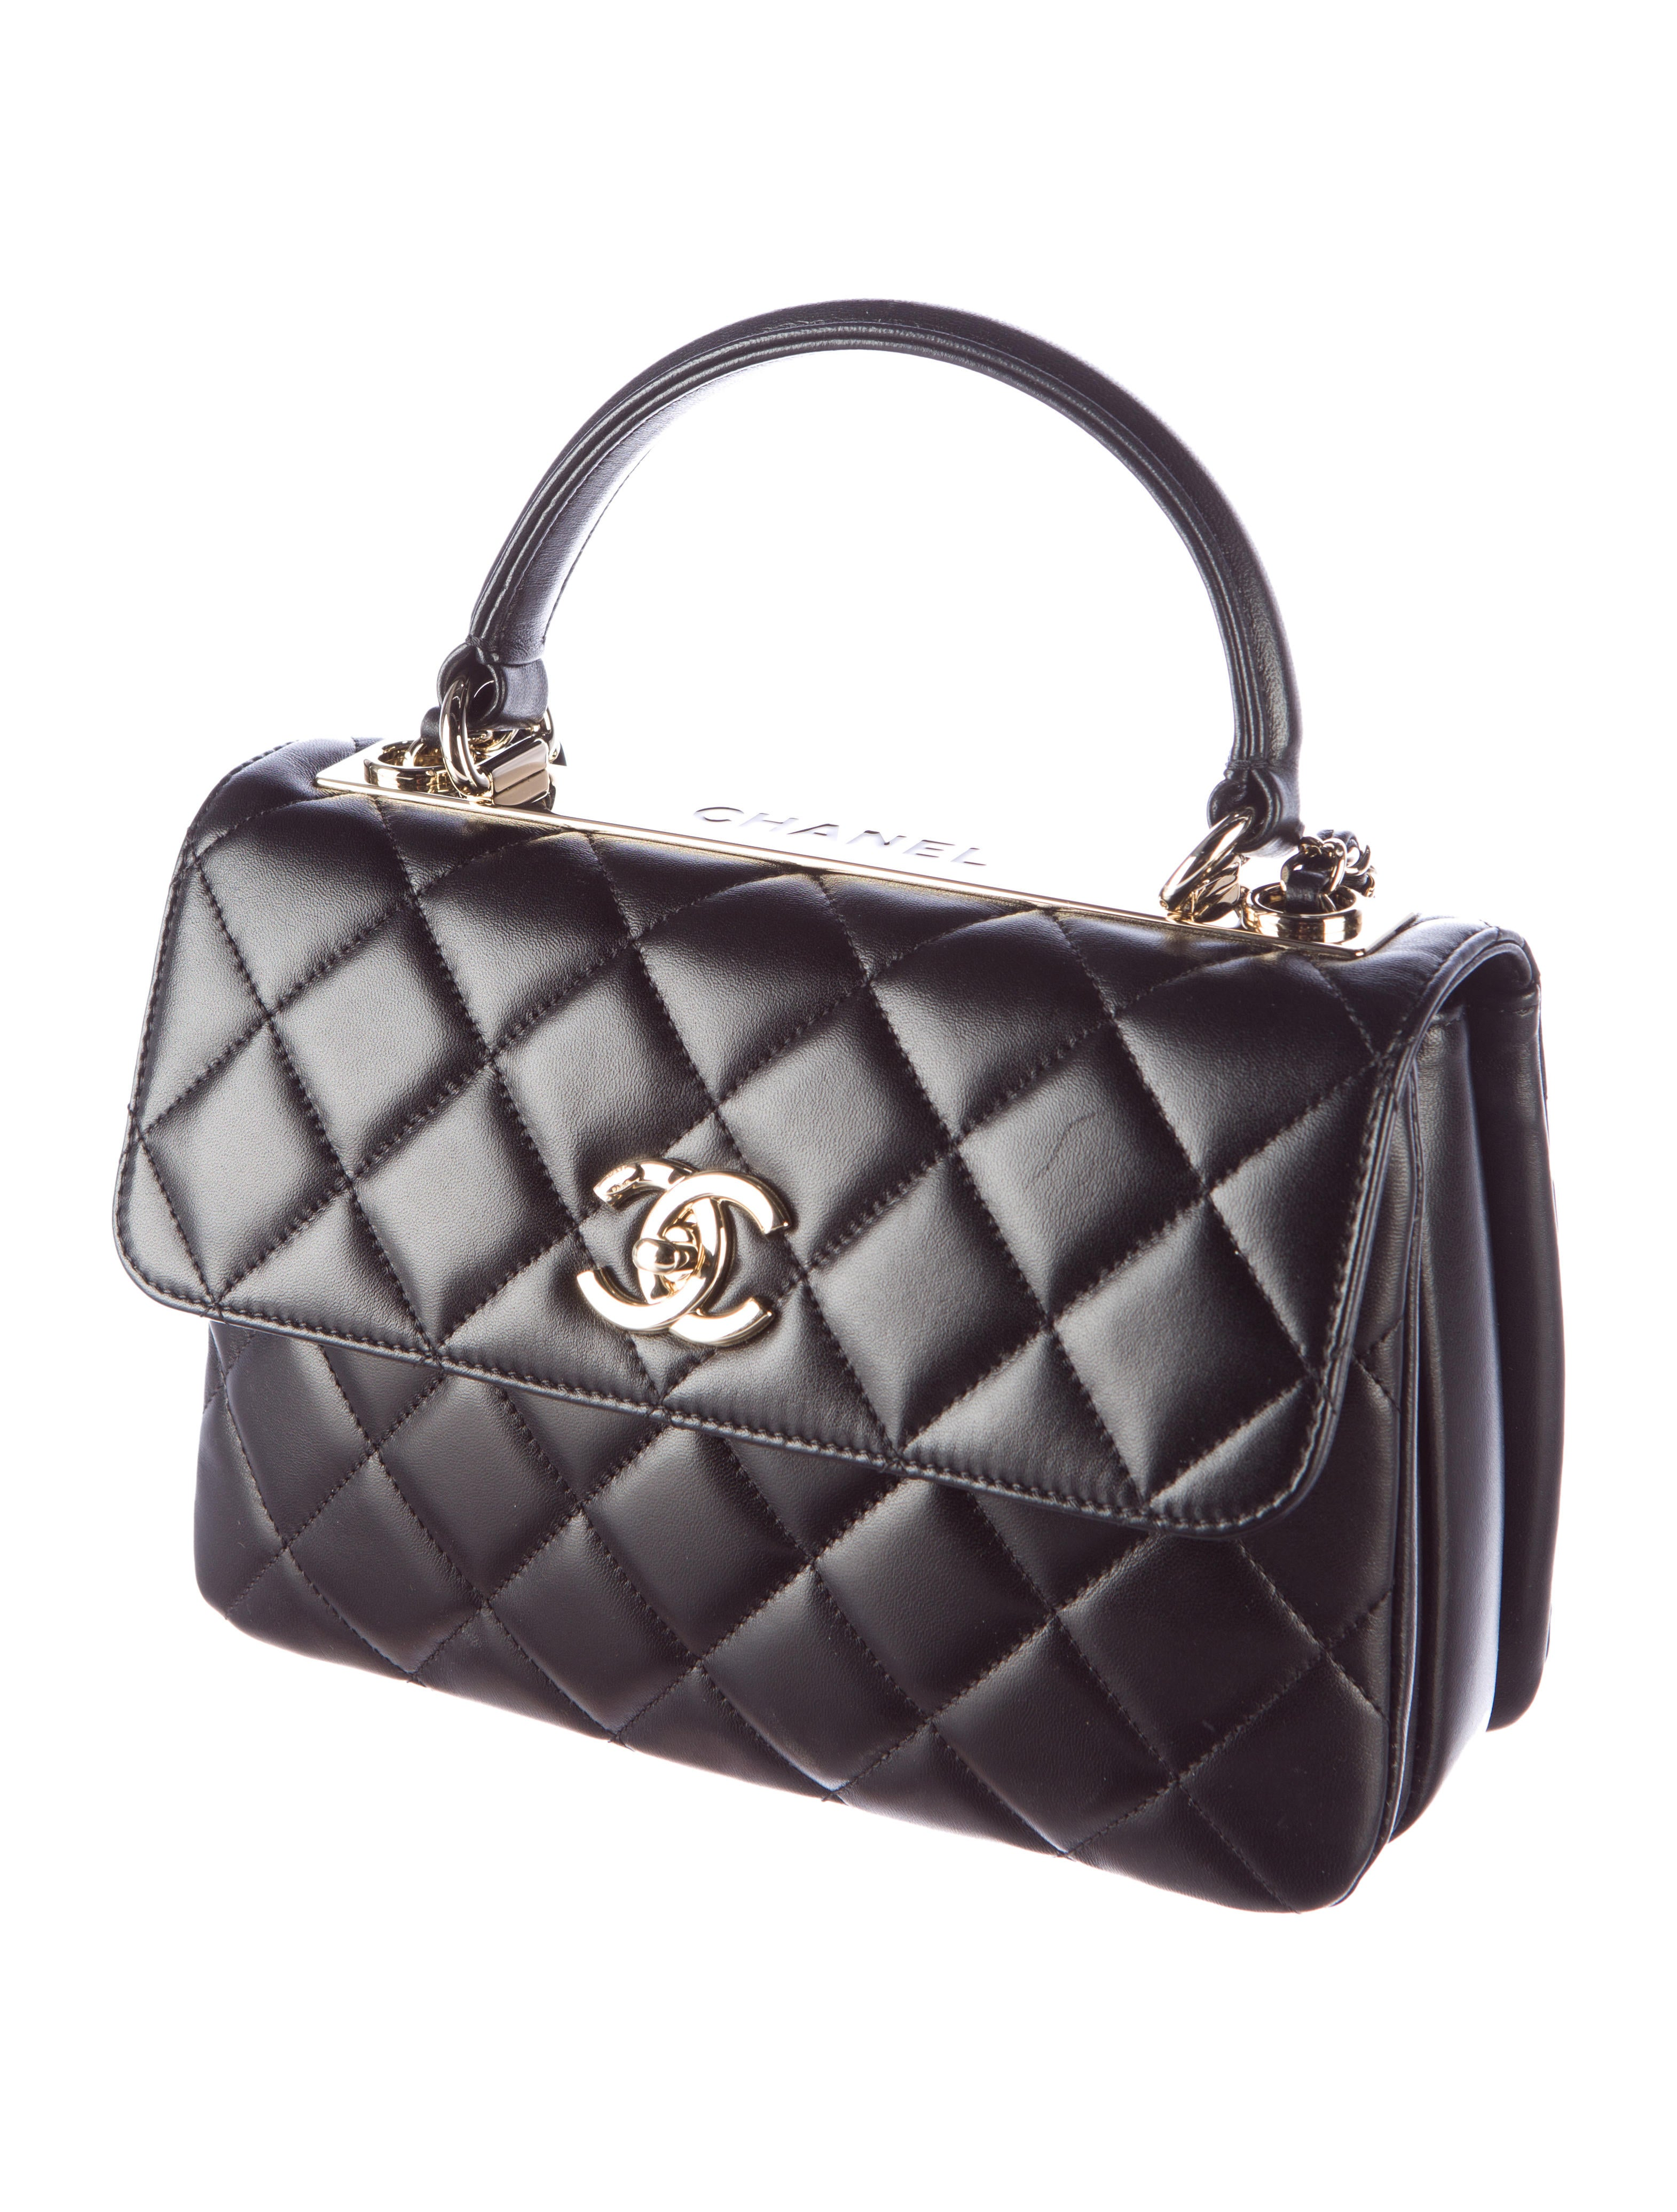 662ab39bdfd515 Chanel Trendy Cc Bag Price | Stanford Center for Opportunity Policy ...